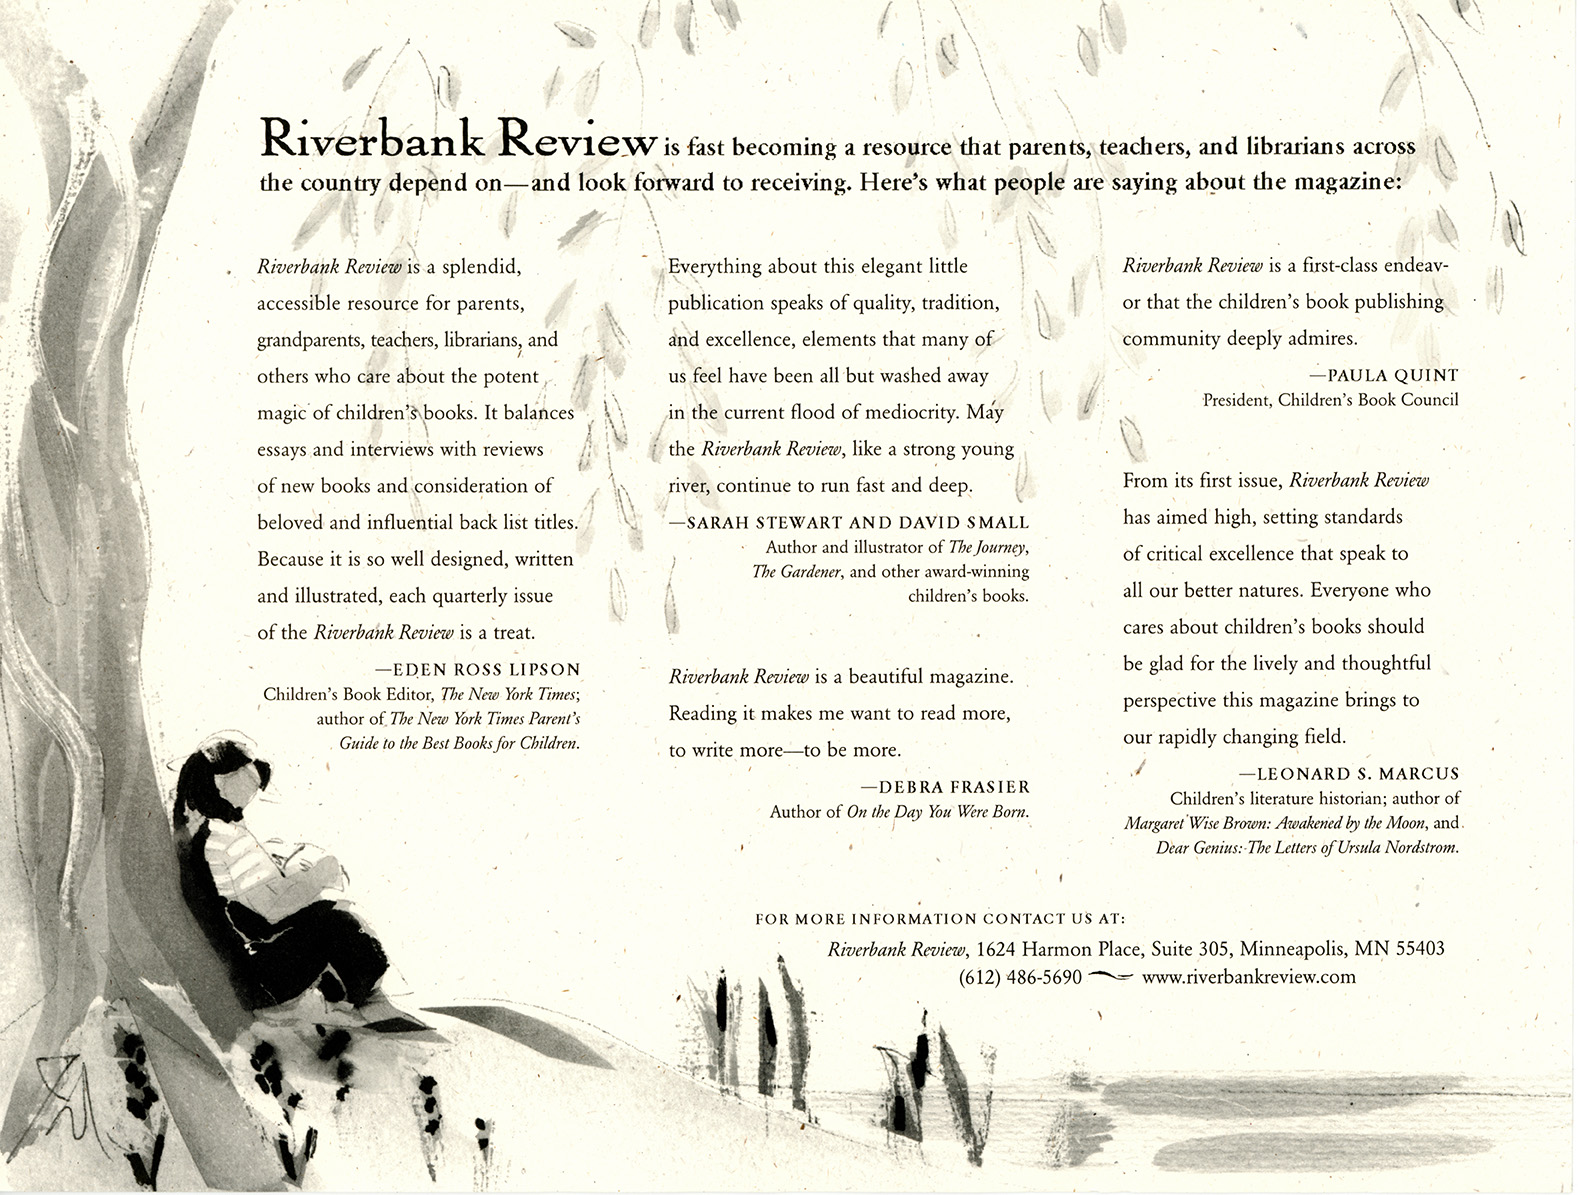 Riverbank Review testimonials